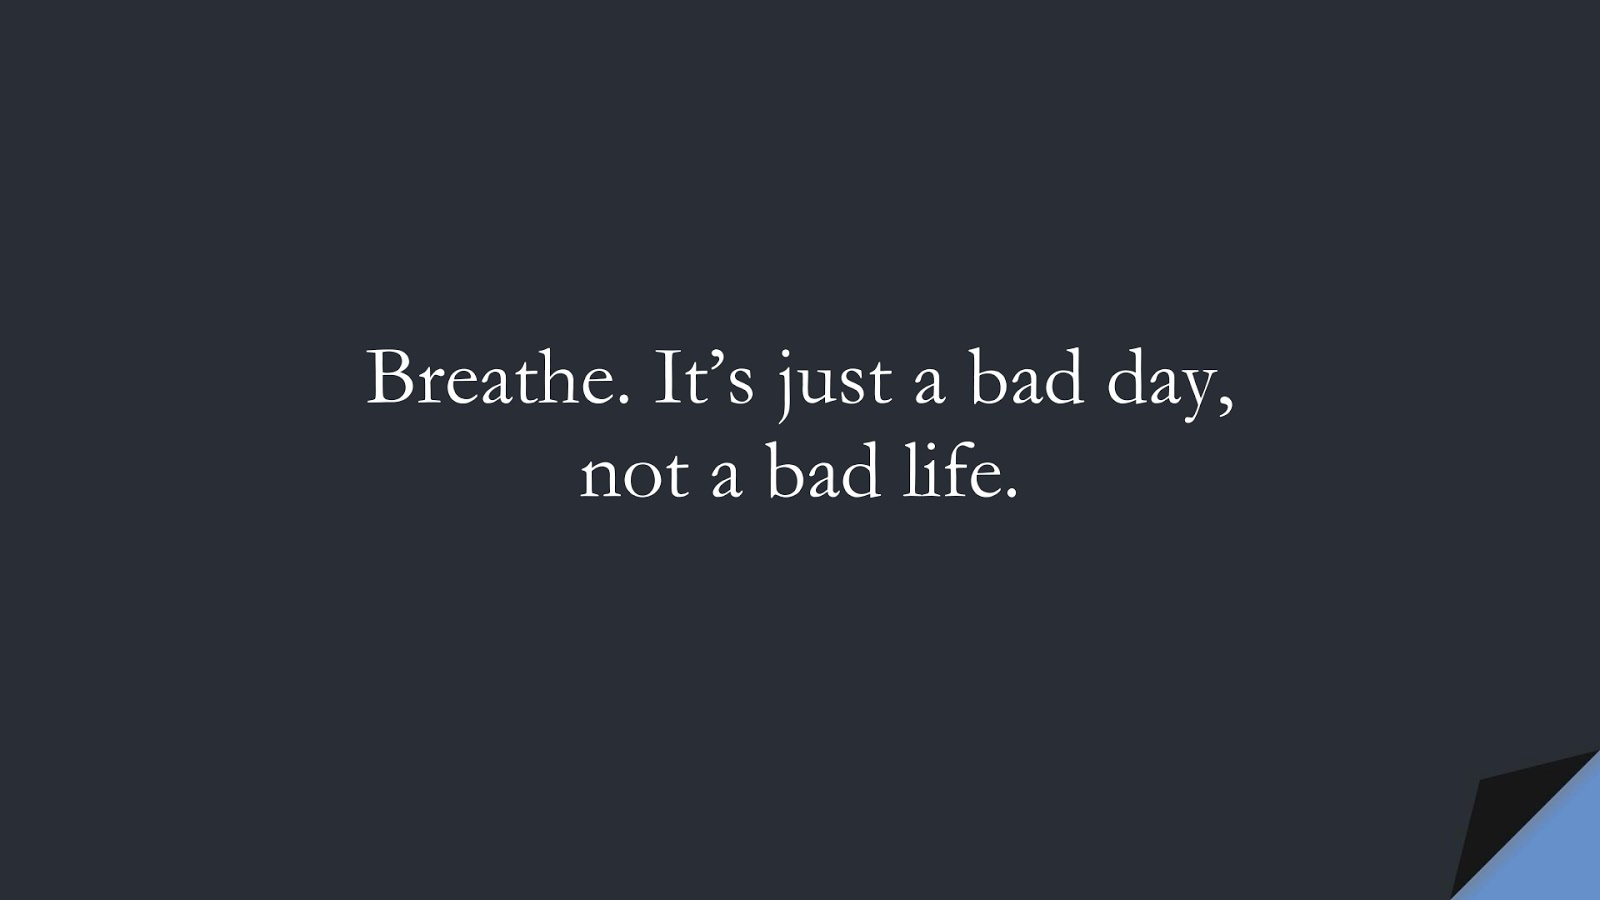 Breathe. It's just a bad day, not a bad life.FALSE